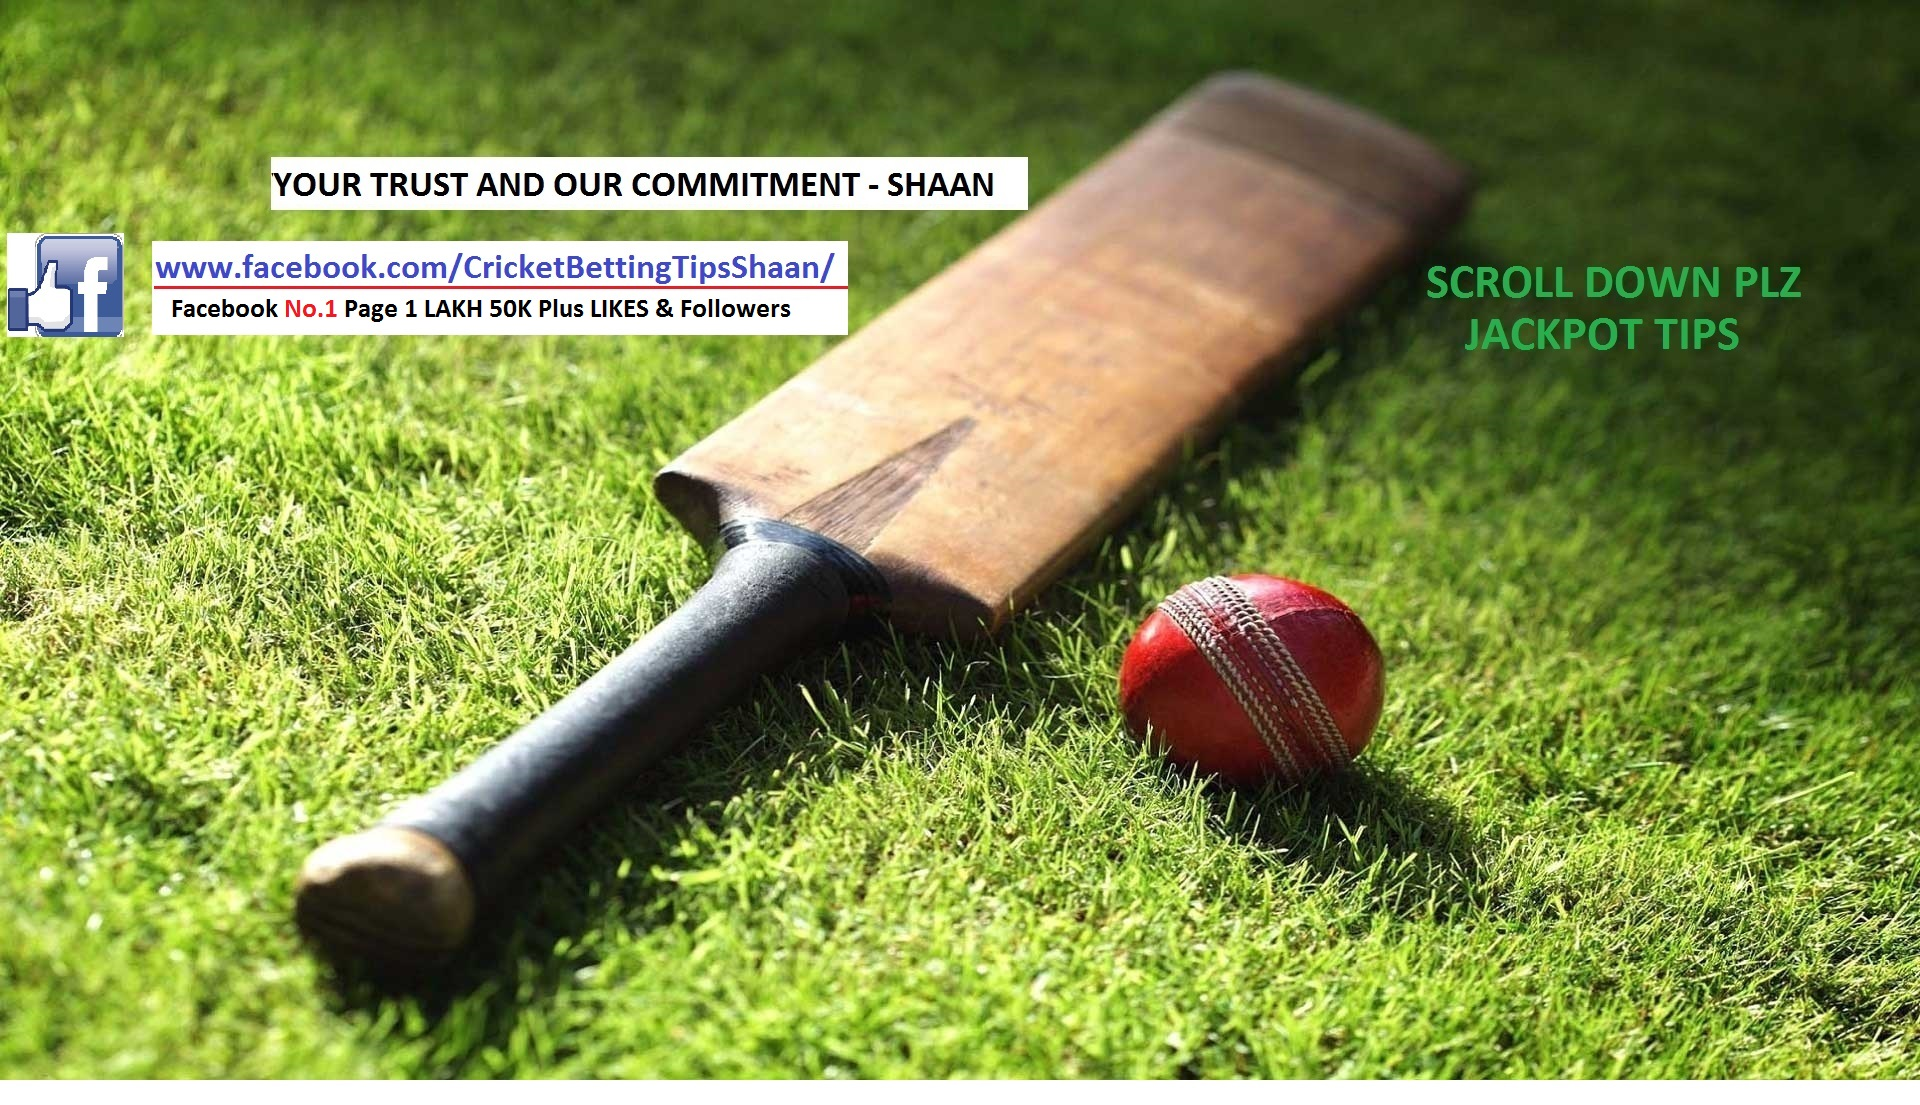 cricket betting tips free help online guide - cbtf shaan HOME TIPS BANNER